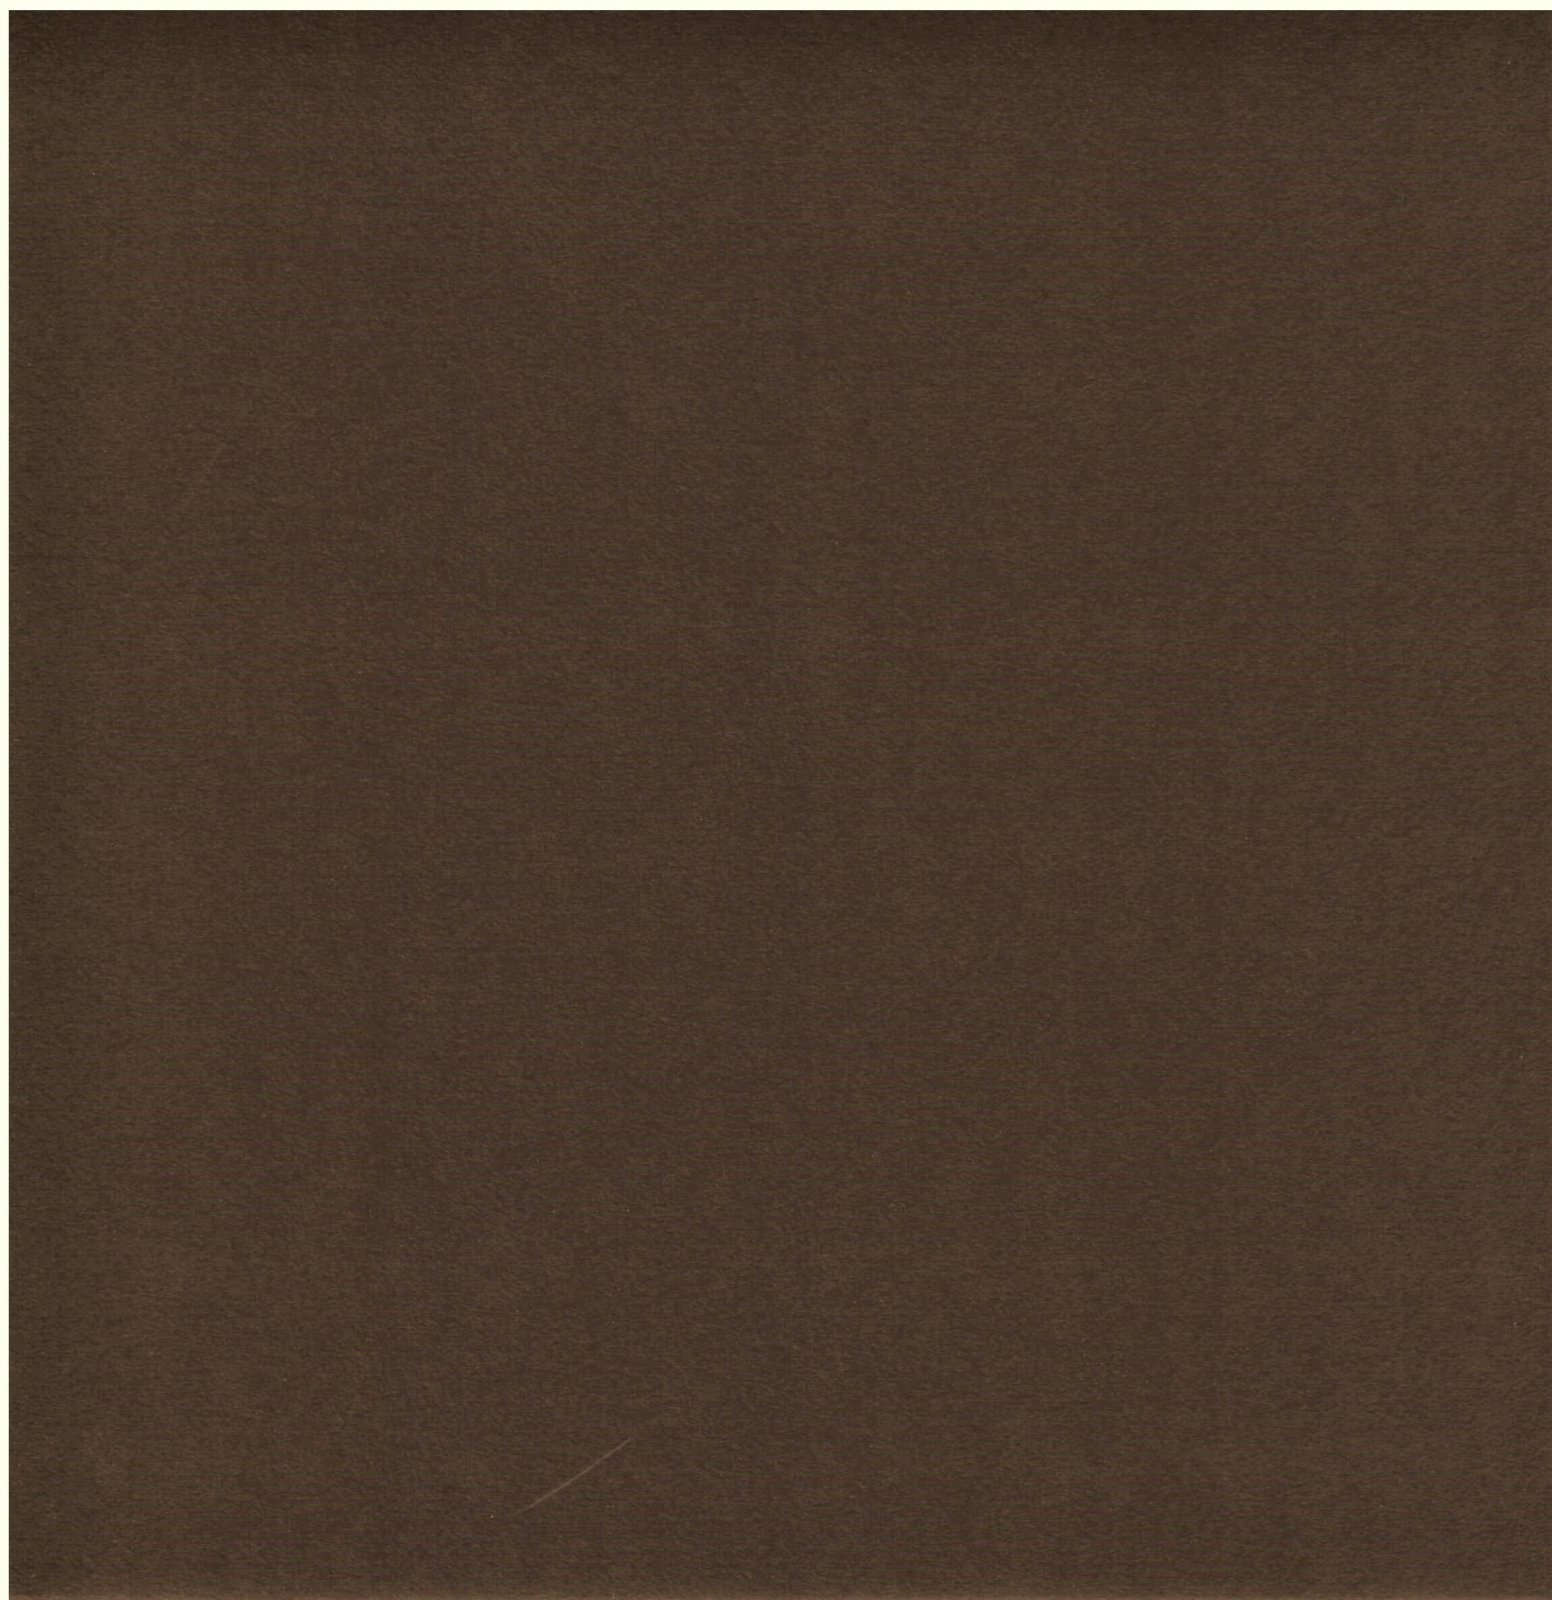 AC Cardstock 12X12 doux/lisse Café 80lbs - Smooth Cardstock, Coffee Item # 71774